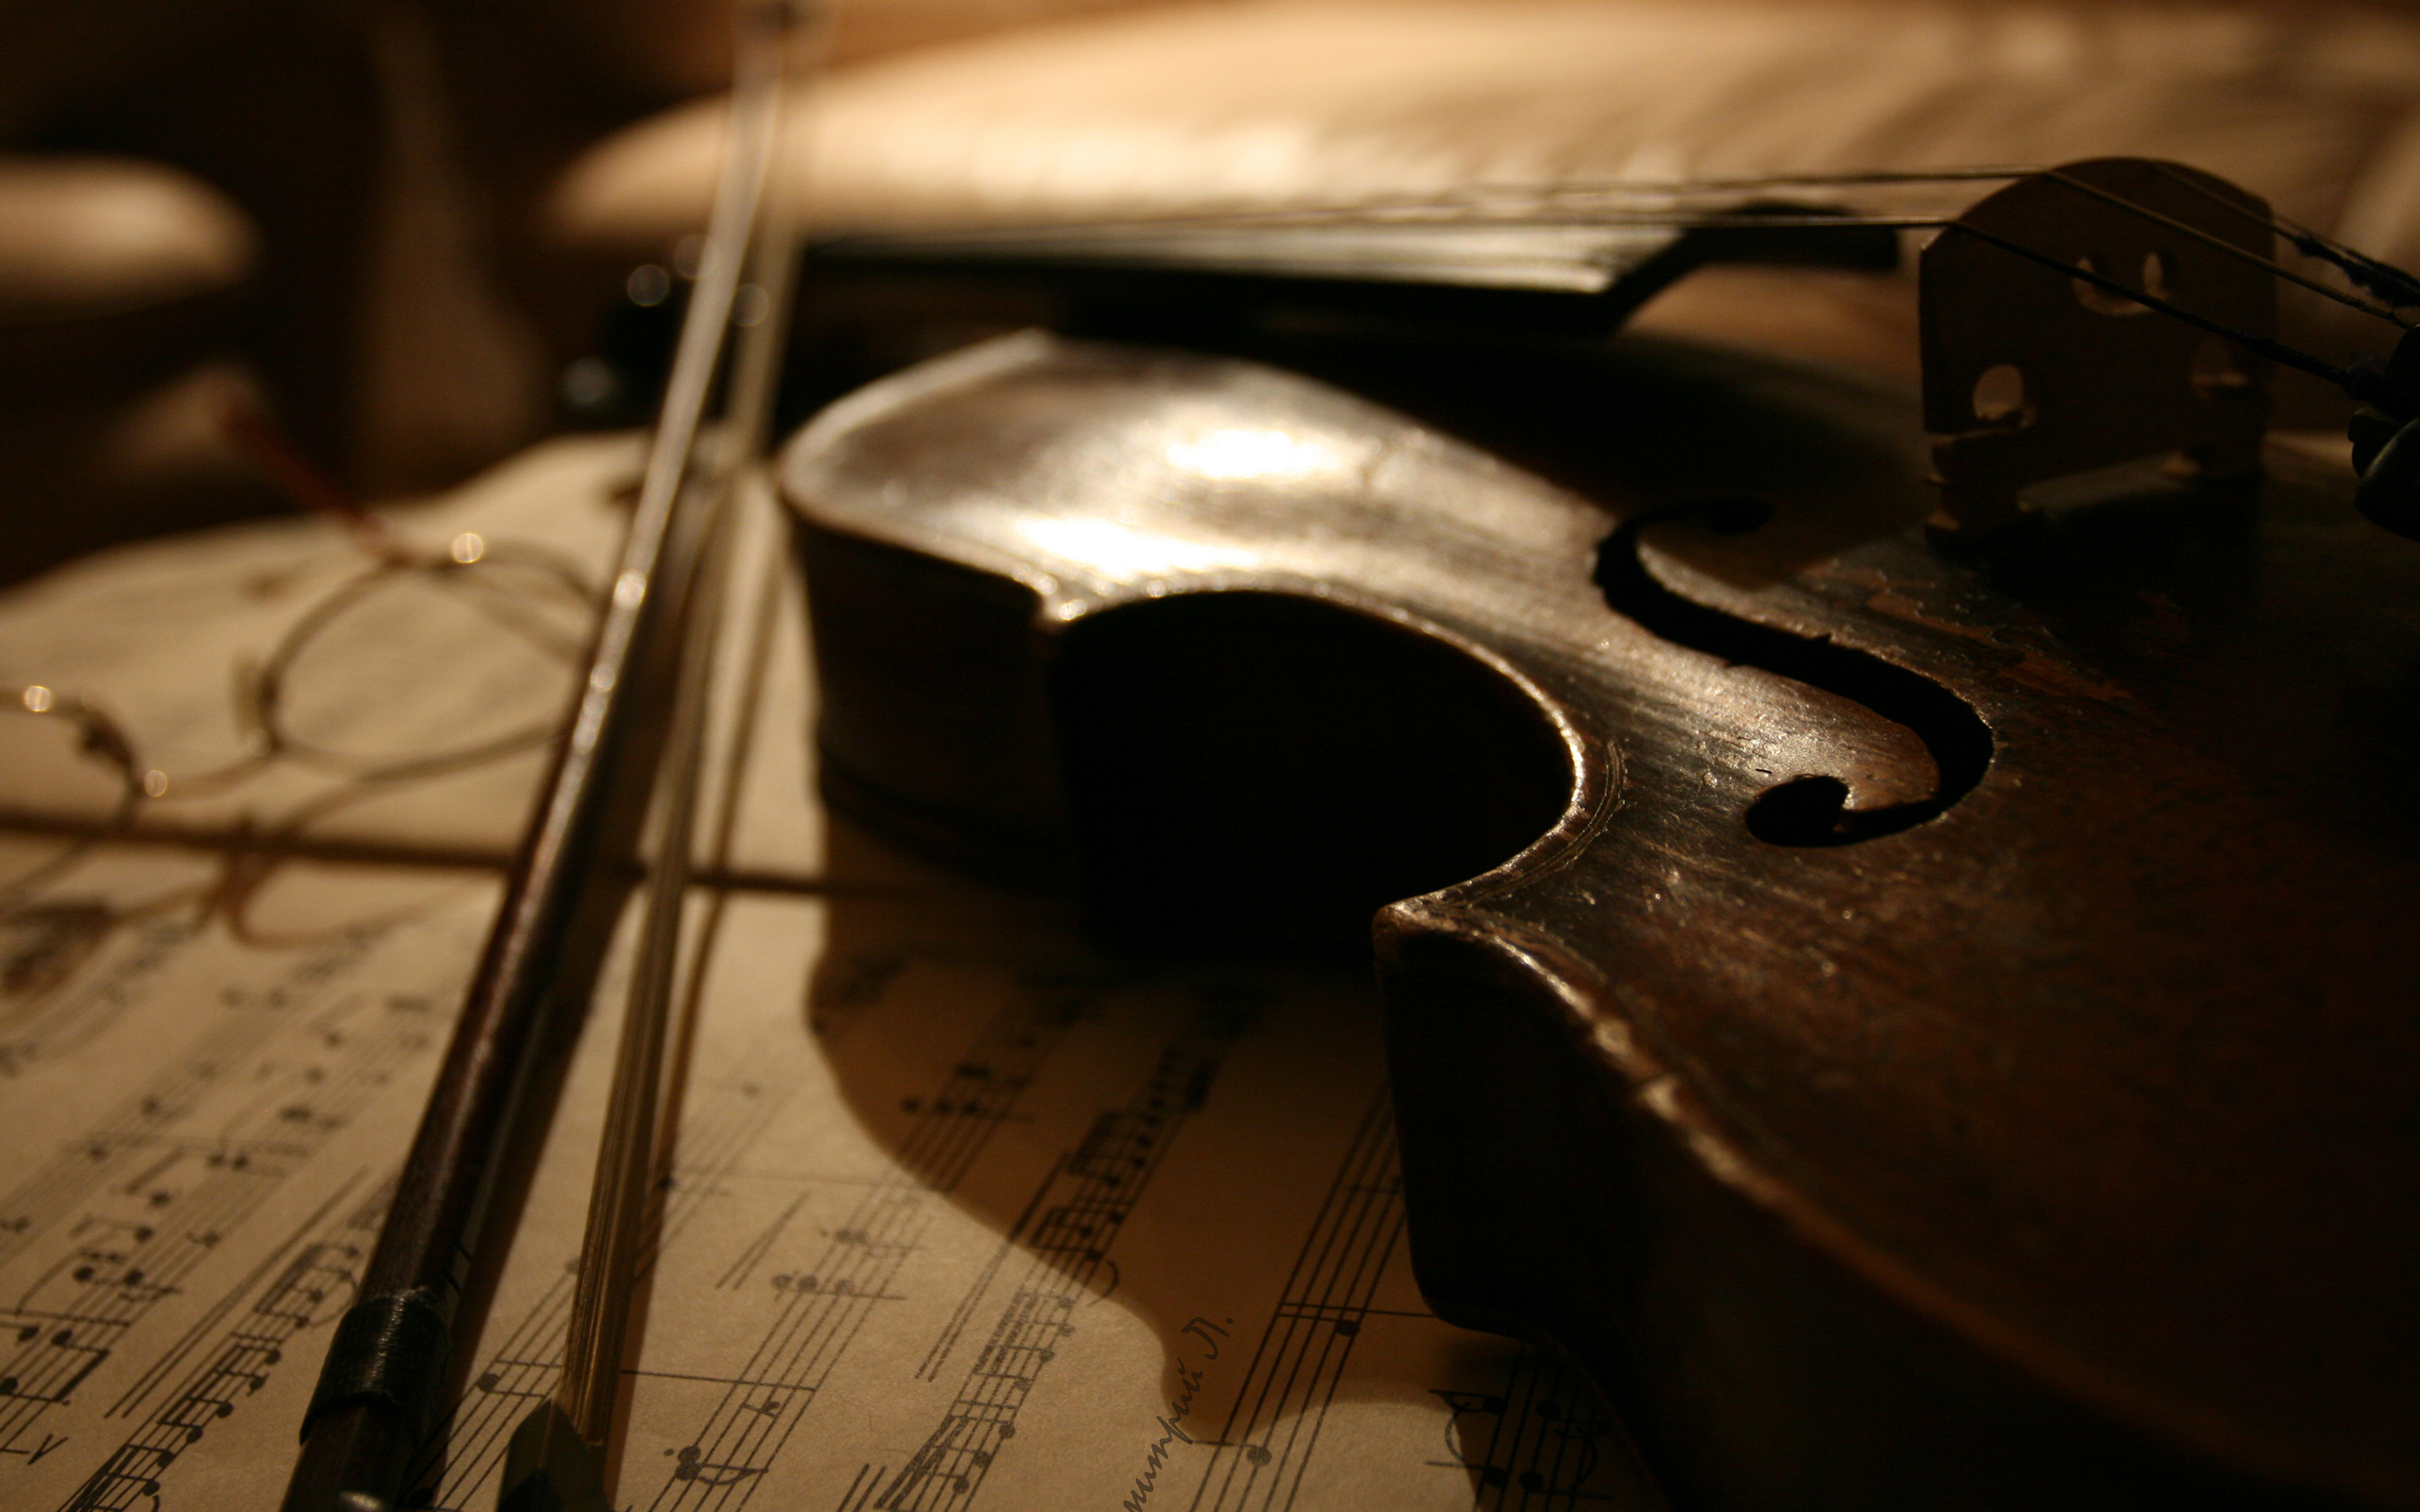 96 Violin Hd Wallpapers Background Images Wallpaper Abyss